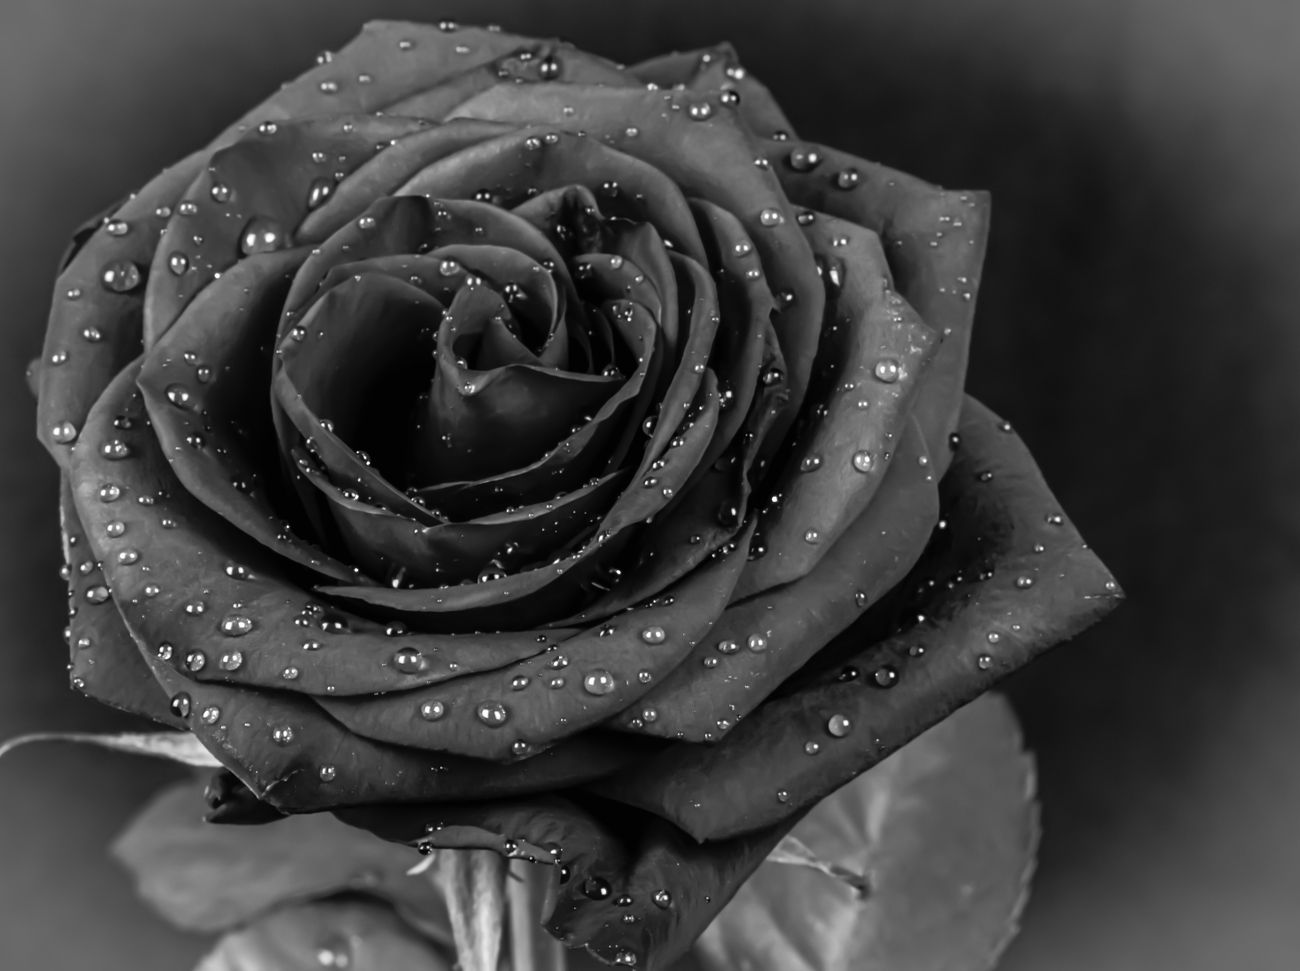 Rose with water drops in black and white closeup